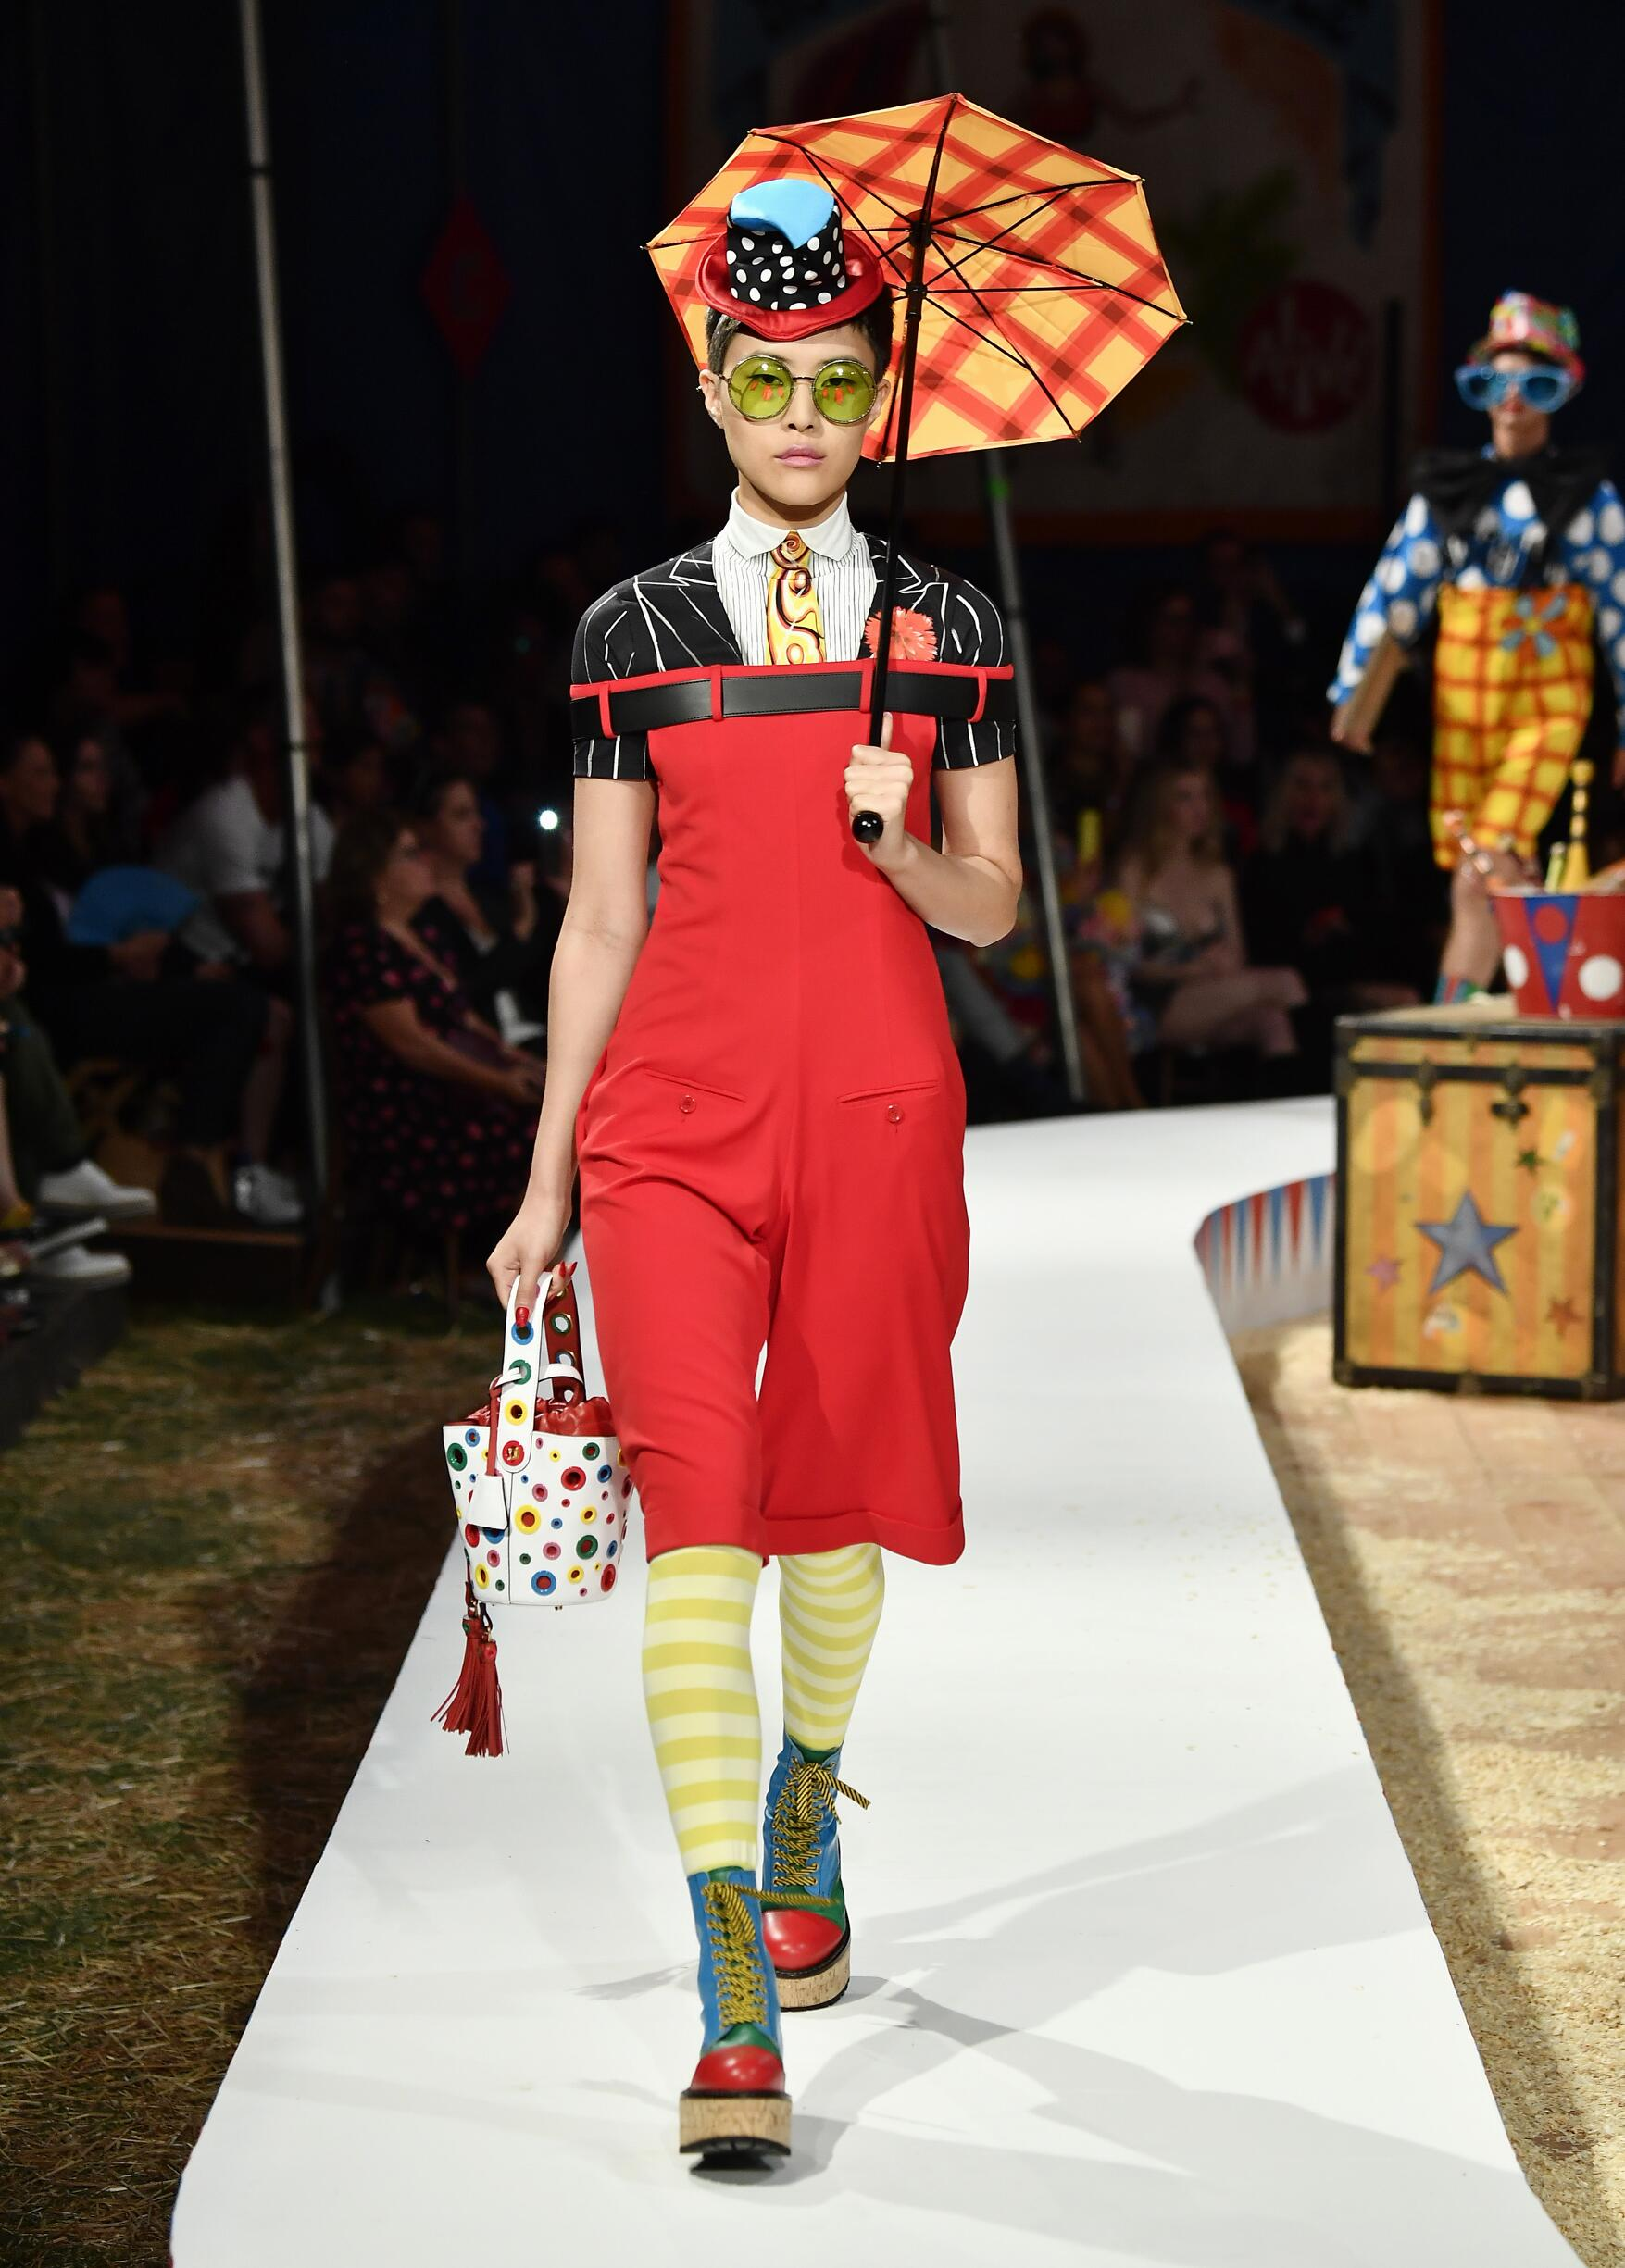 Moschino Spring Summer 2019 Menswear and Women's Resort Collection Look 44 Los Angeles